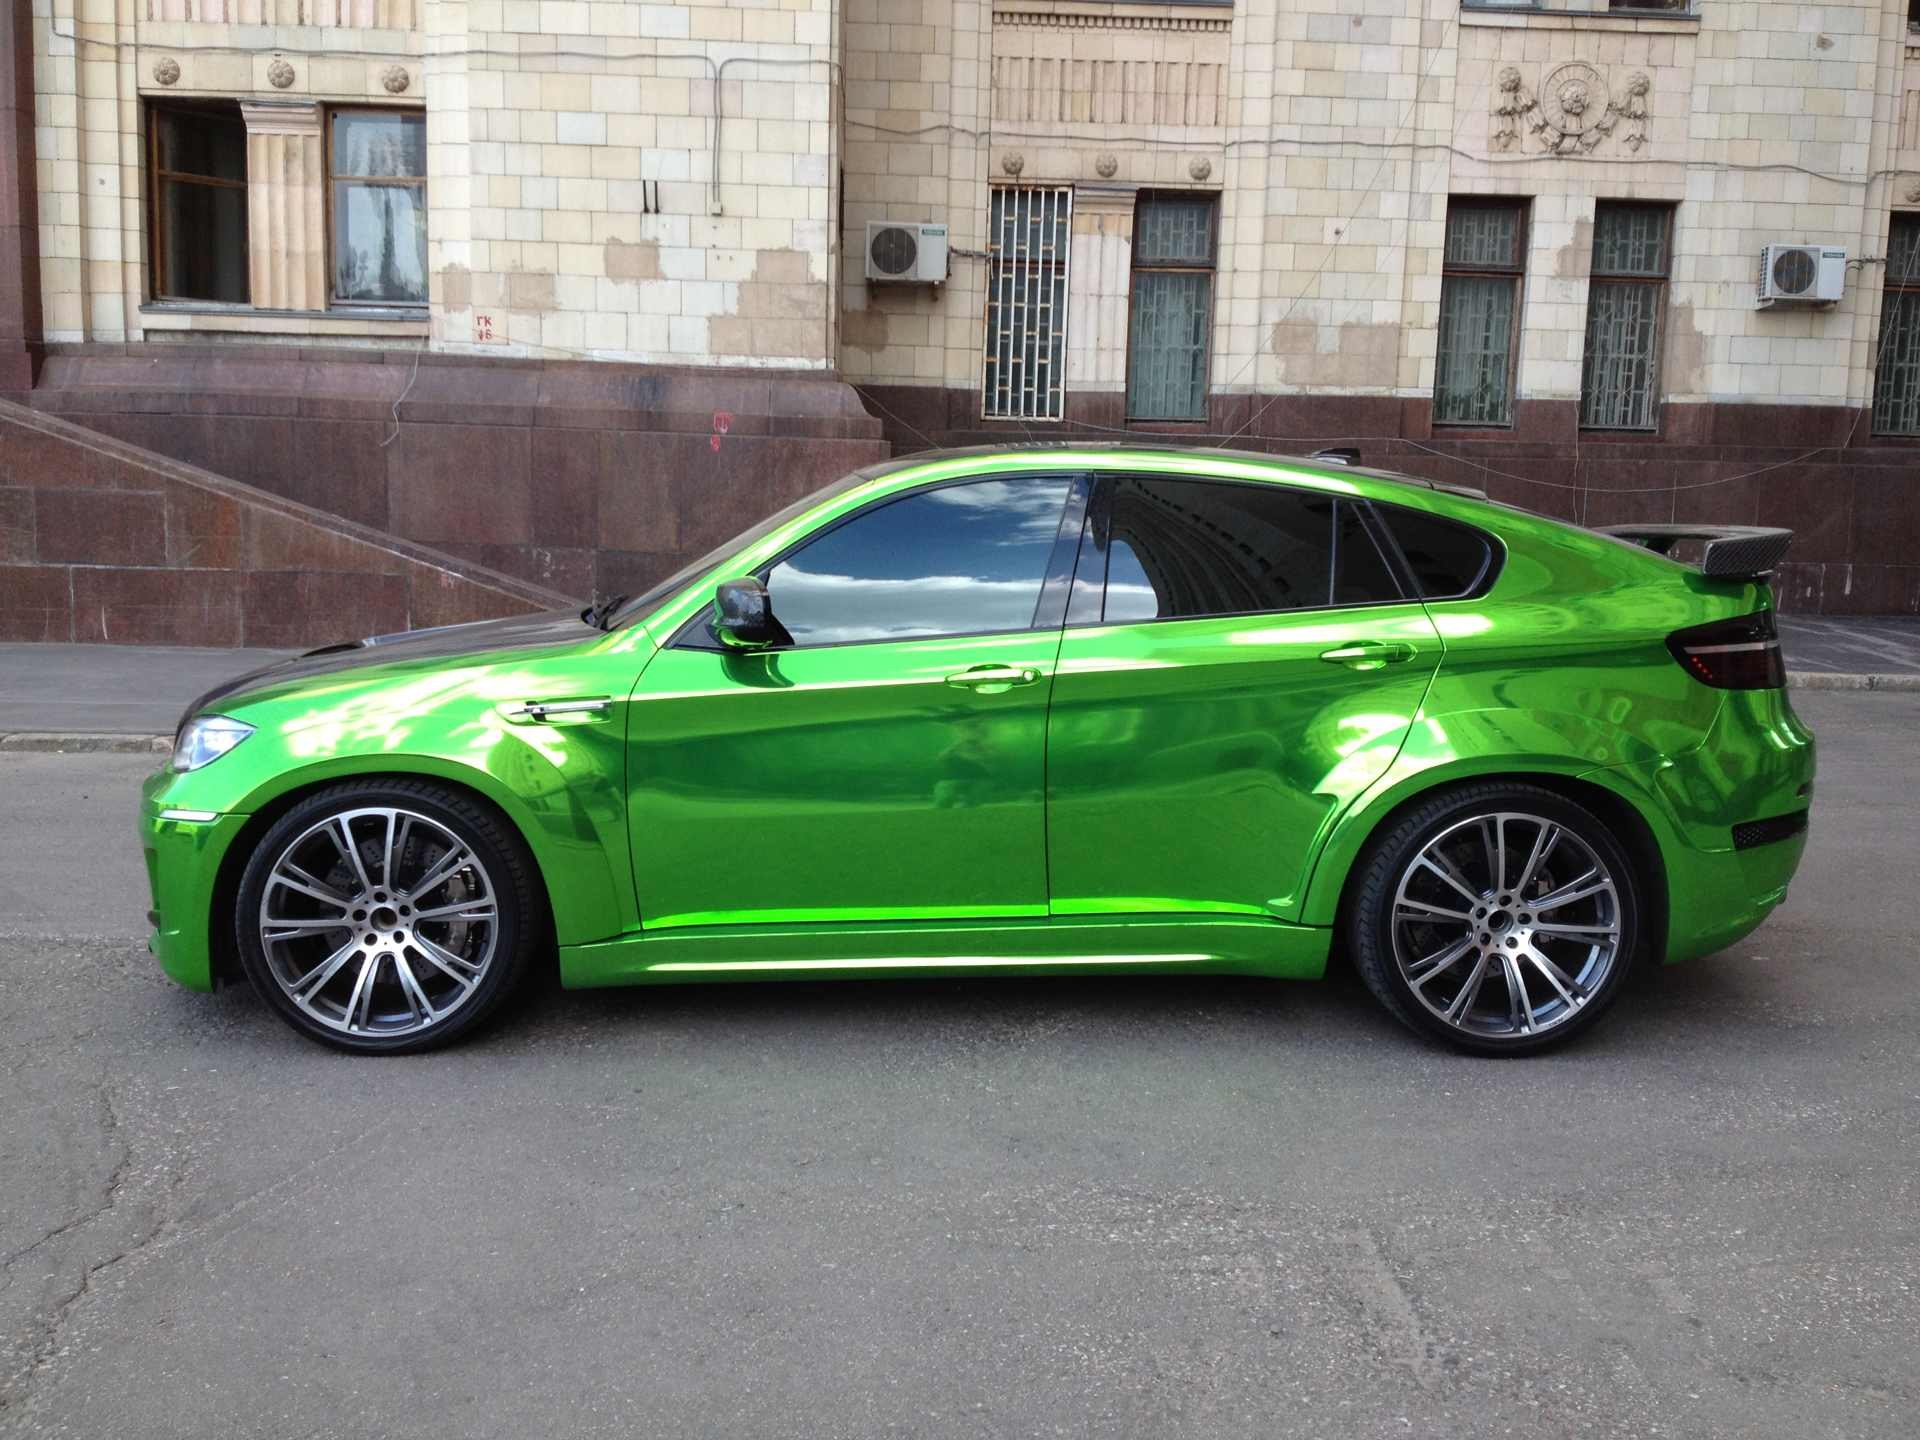 Ready To Spot In Moscow Chrome Green Lumma Clr X 650 M